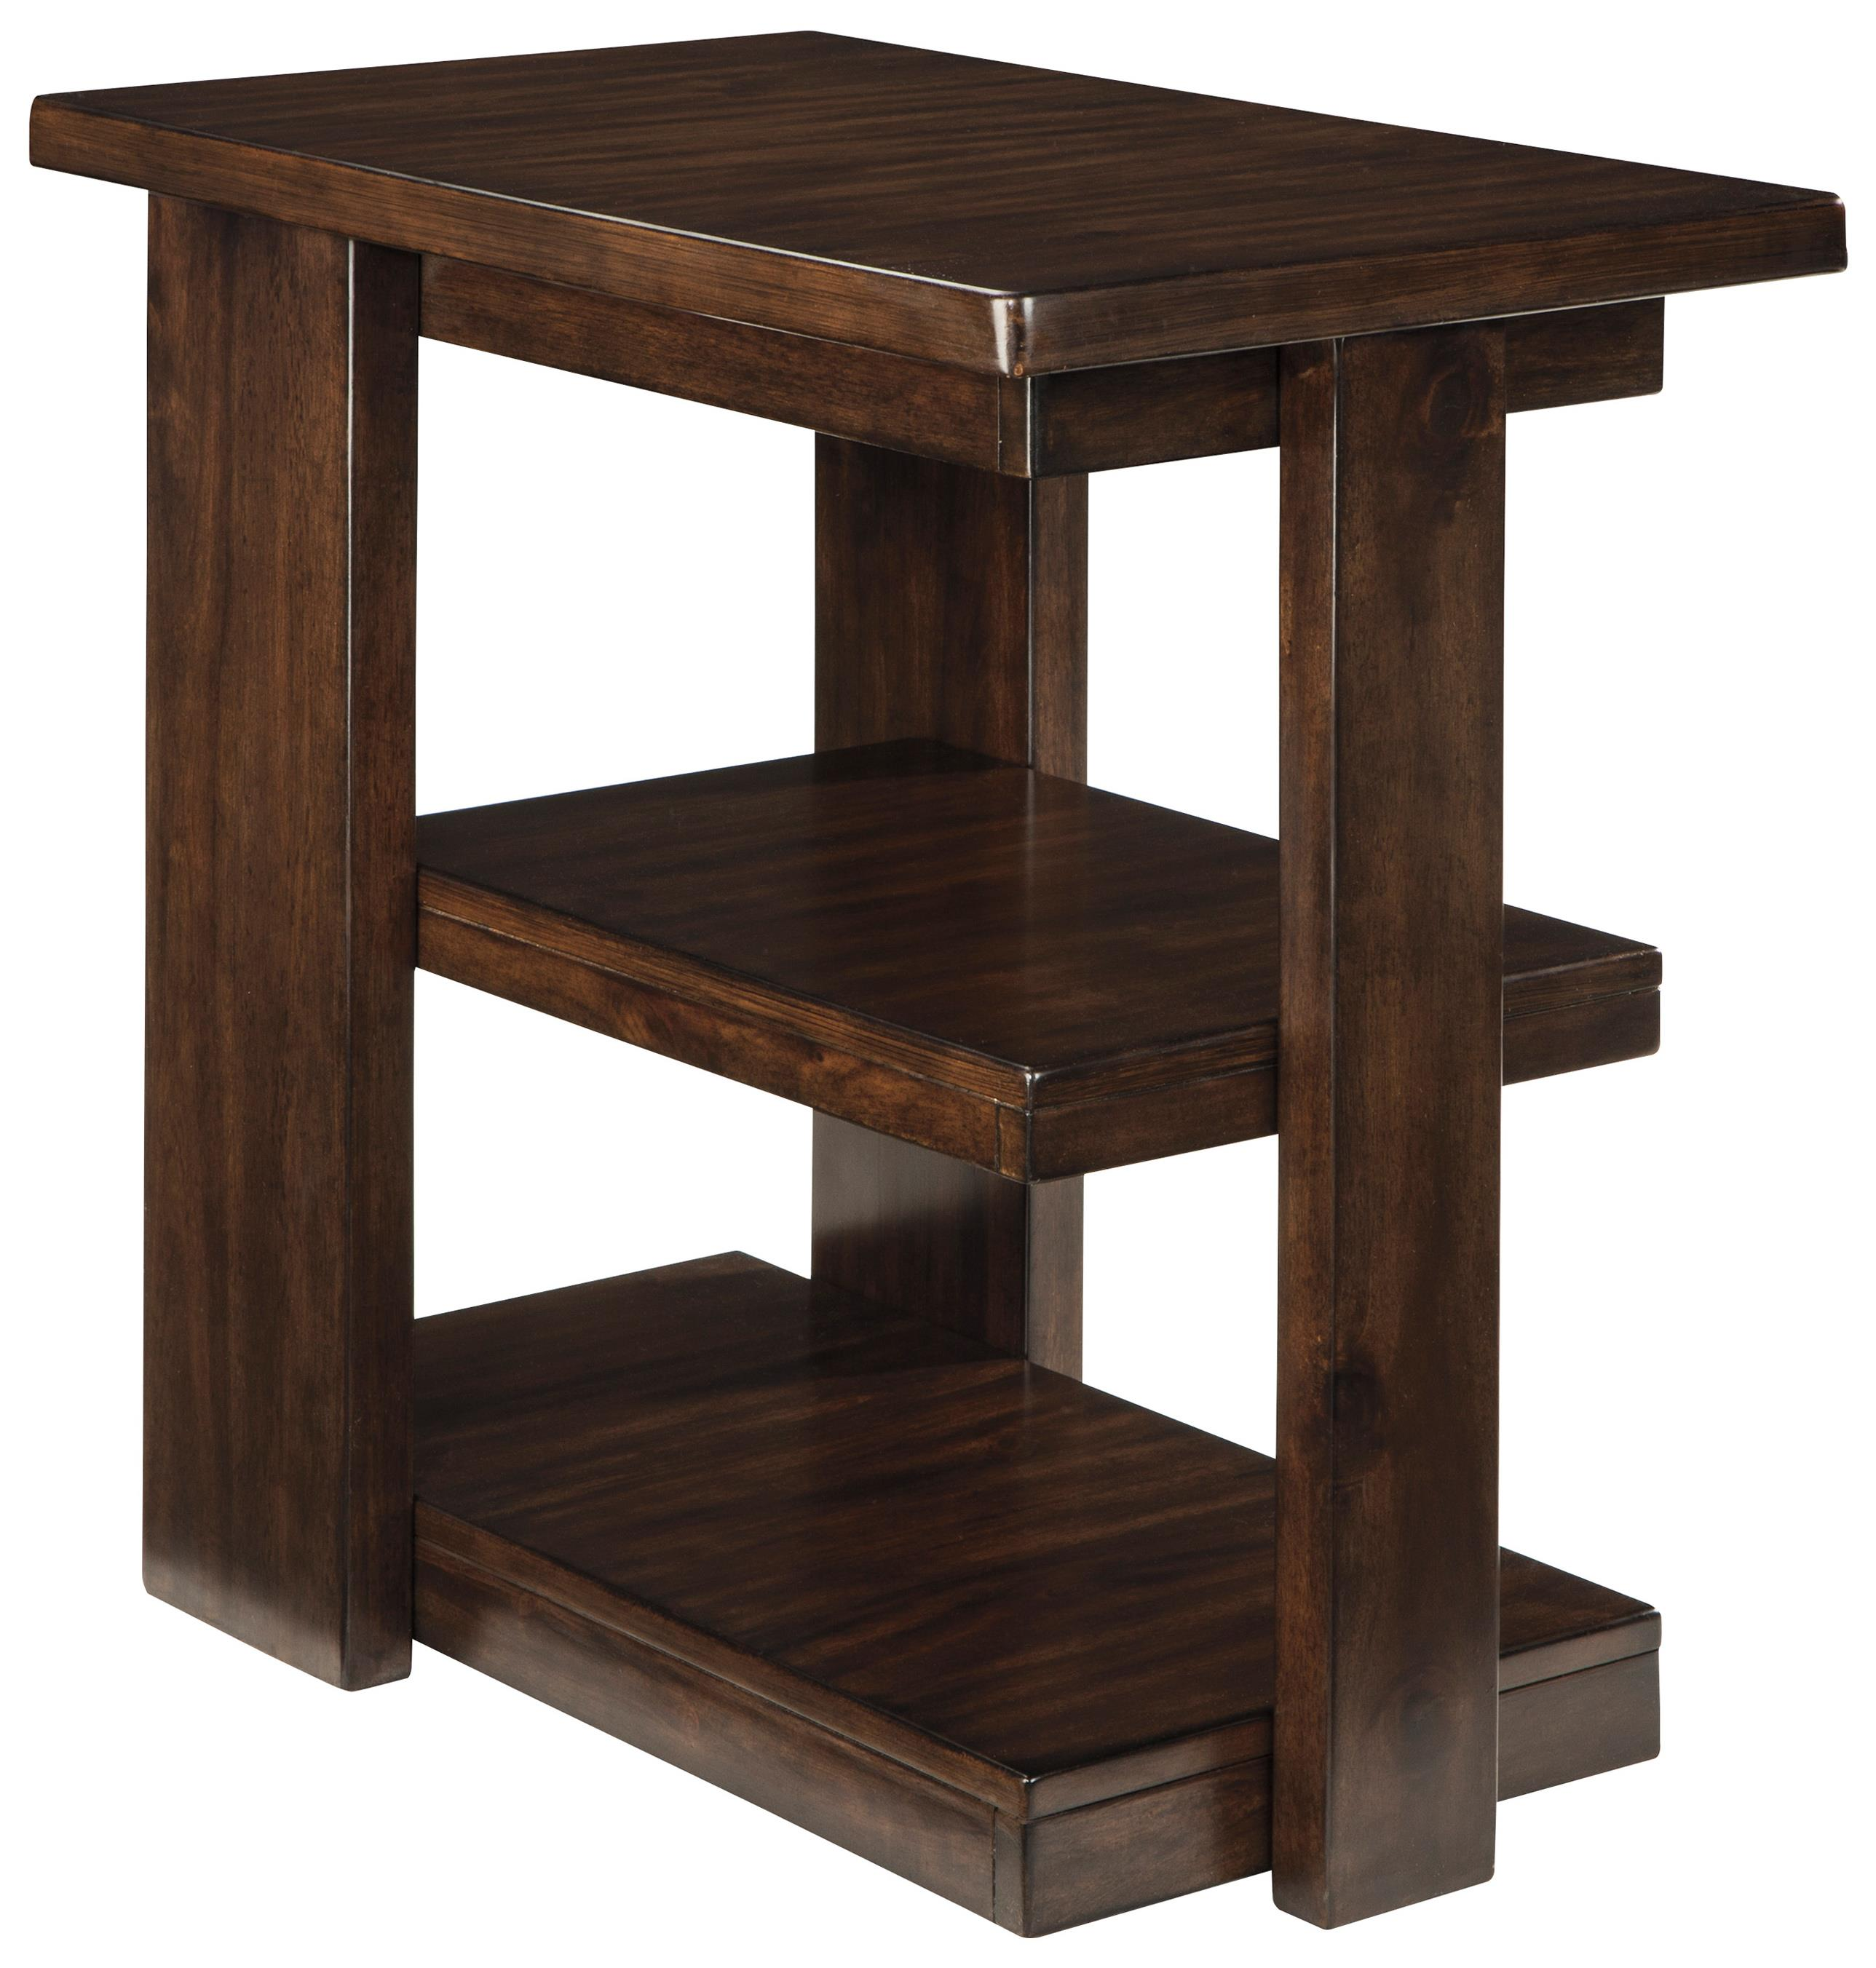 Signature Design by Ashley Garletti Chair Side End Table - Item Number: T787-7